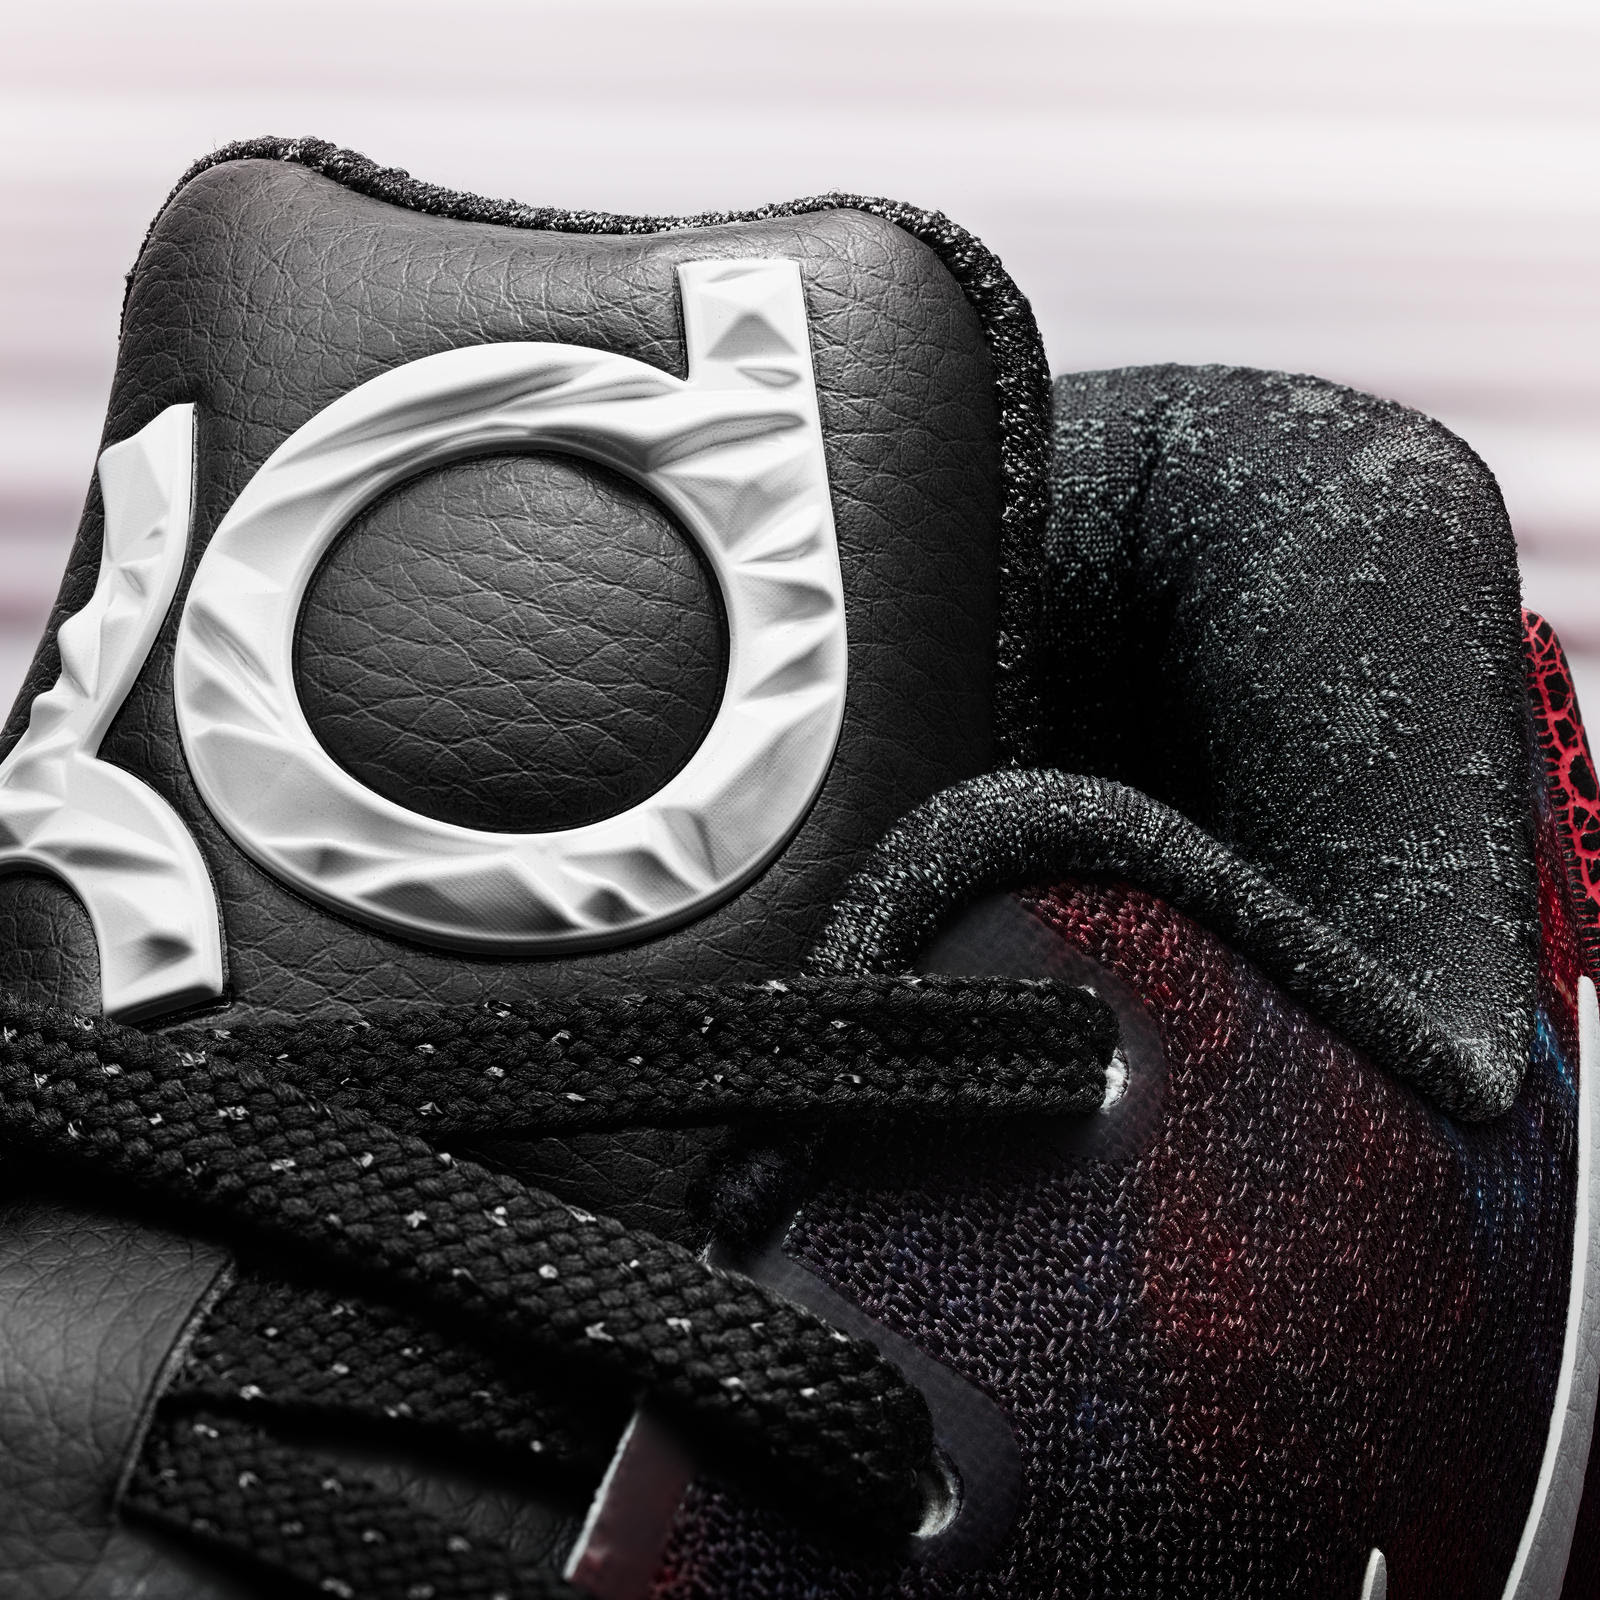 b764f8b9a343 Powcast Media Network Group  SNEAKERHEADS WILL DROOL OVER  THE 2015 ...